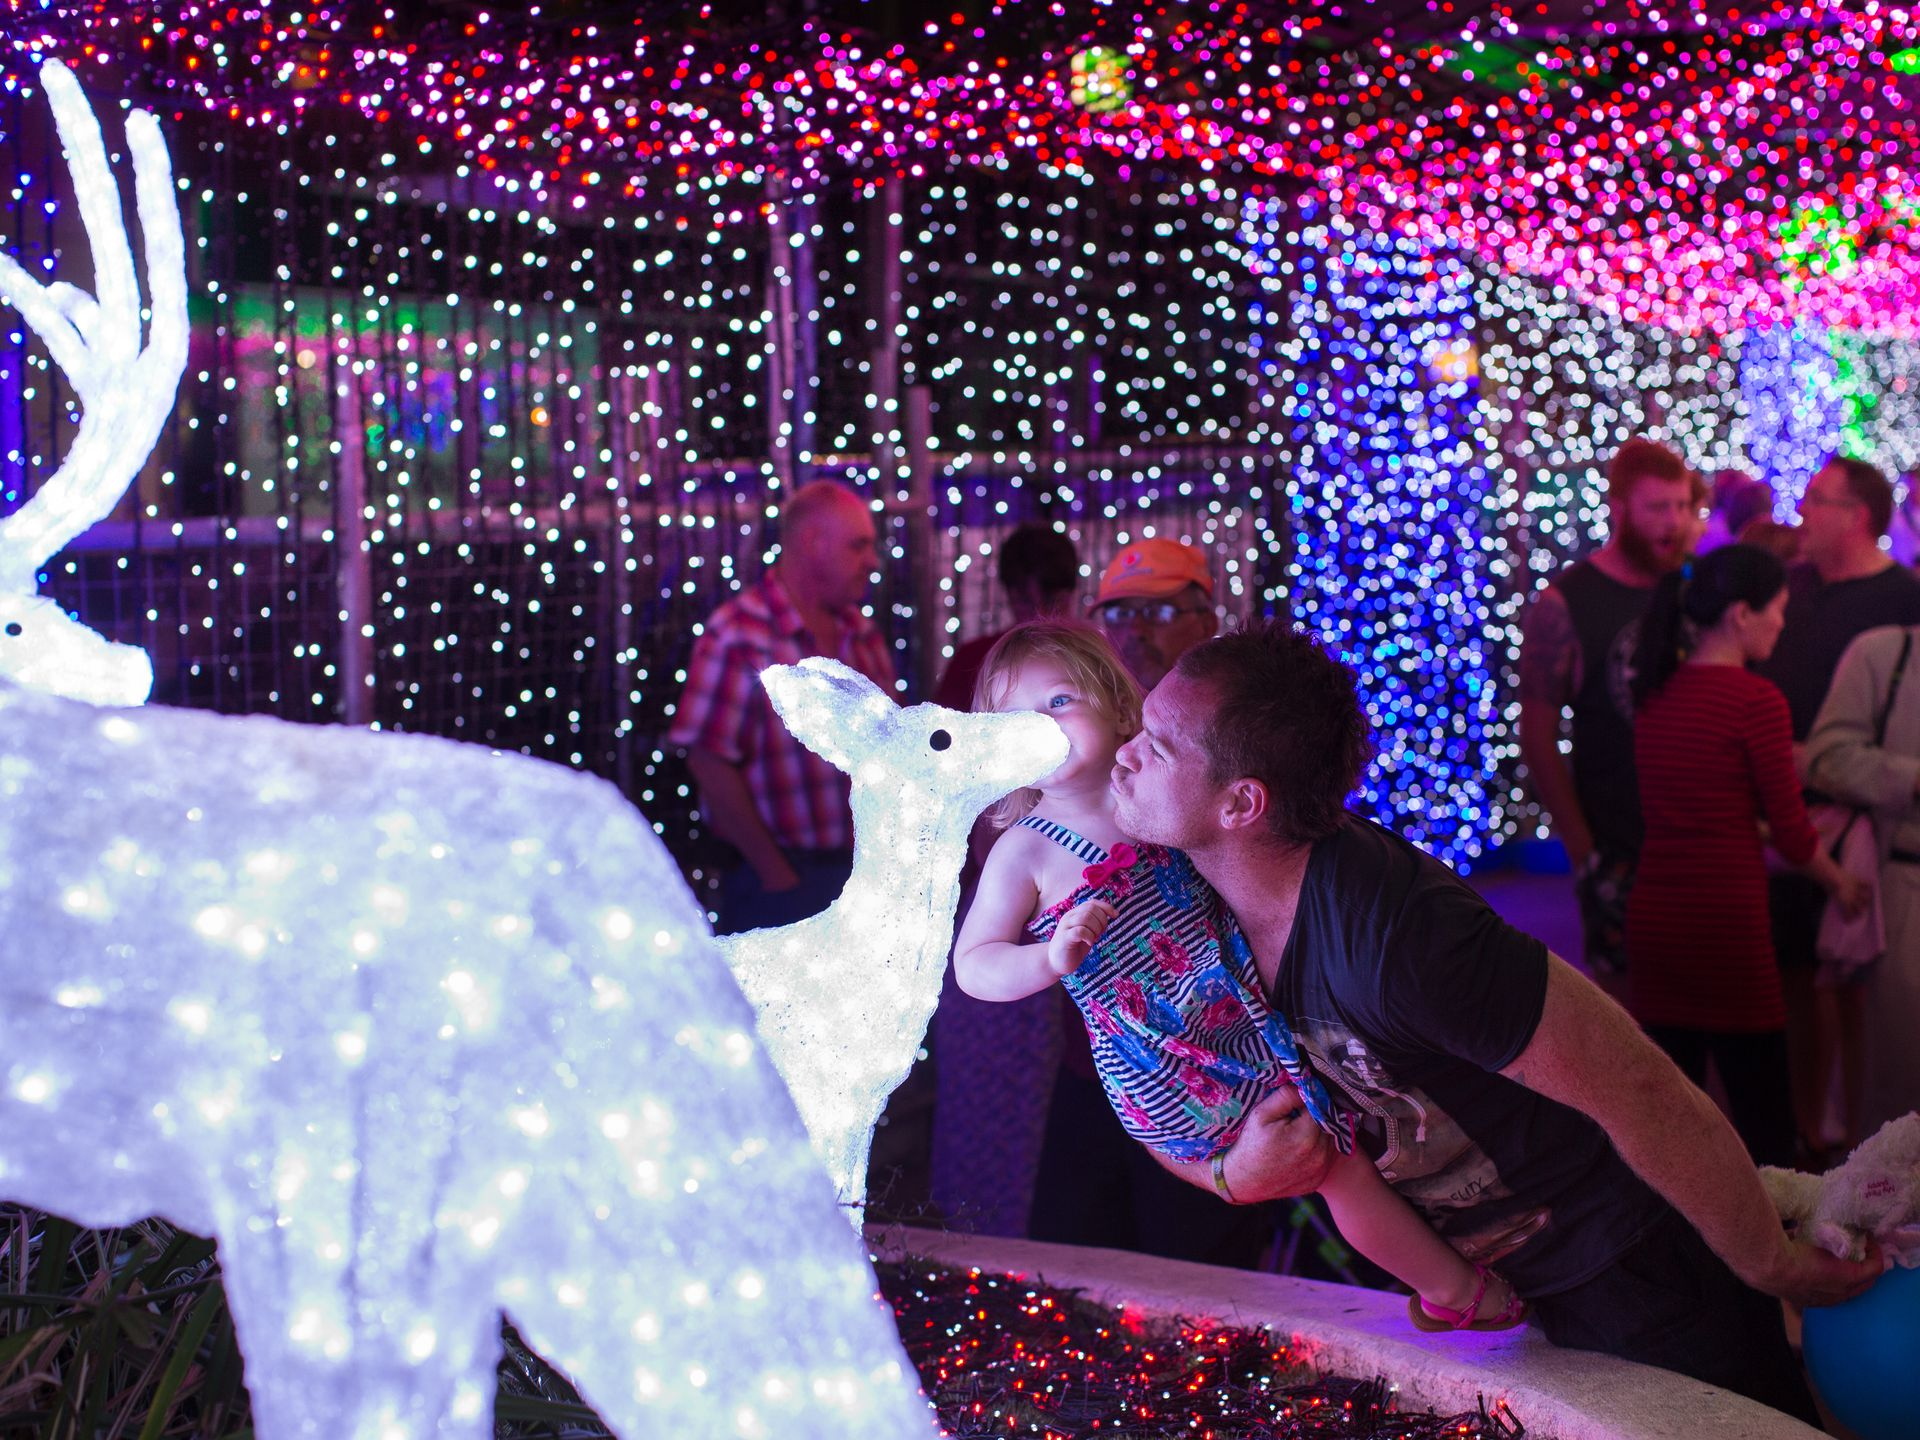 Over 1 million lights have been set up in Canberra, Australia, officially breaking the Guinness World Record for the largest LED image display. Visitors take photos on Nov. 29.  (Photo: Stefan Postles, Getty Images)